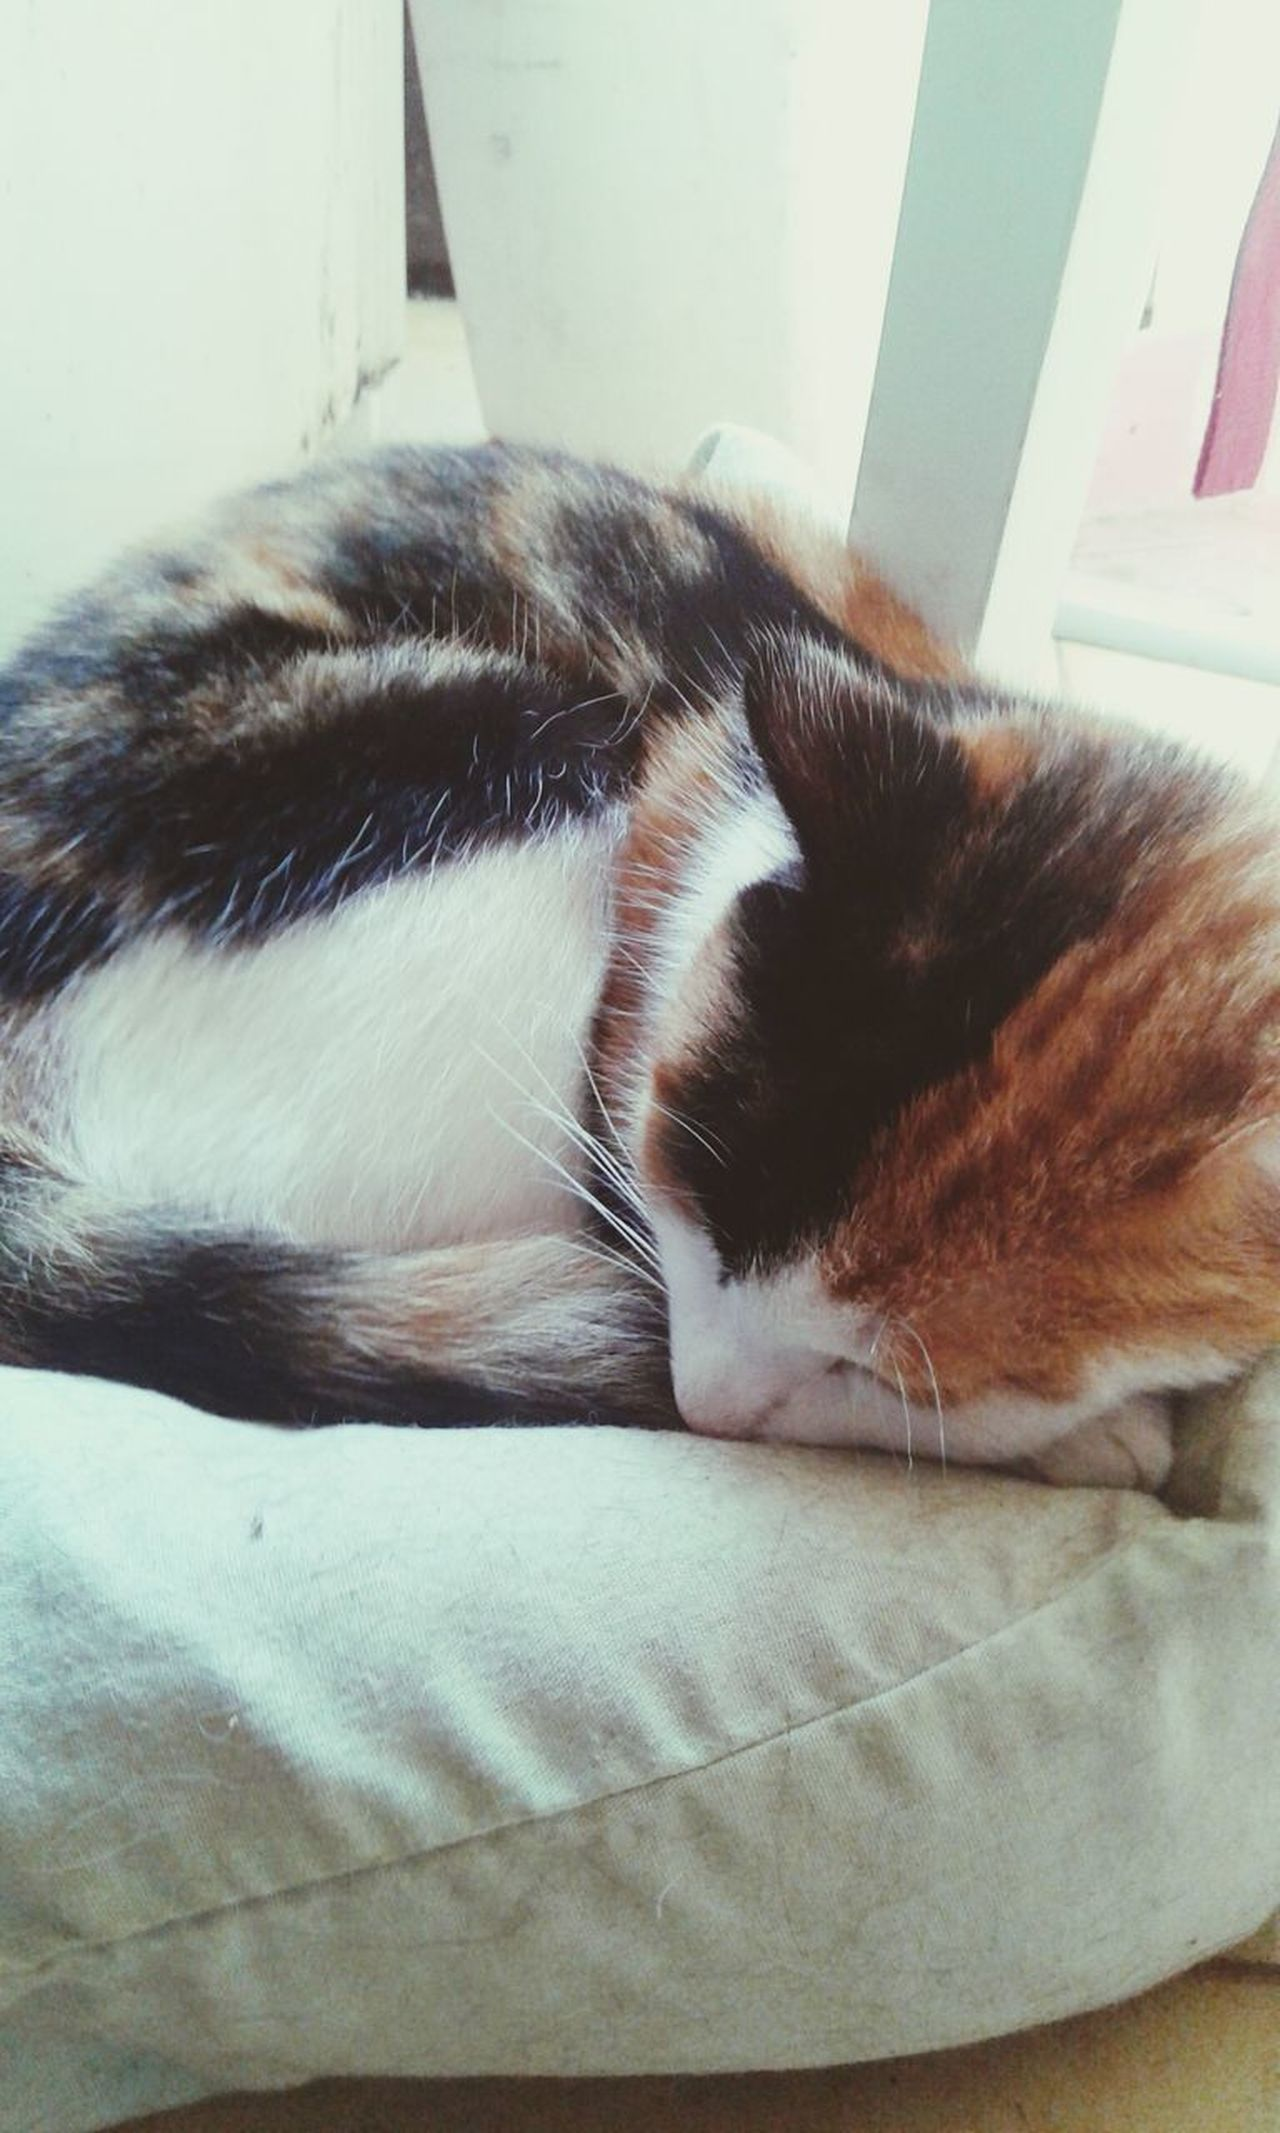 Pets Domestic Animals Relaxation Animal Themes Domestic Cat One Animal People Girl Lovely Love Tranquility Lovers Smile❤ Girly No People Beauty In Nature Sleeping Eyes Closed  Eyes Closed  Nature Photography Cat♡ Cat Cat Lovers